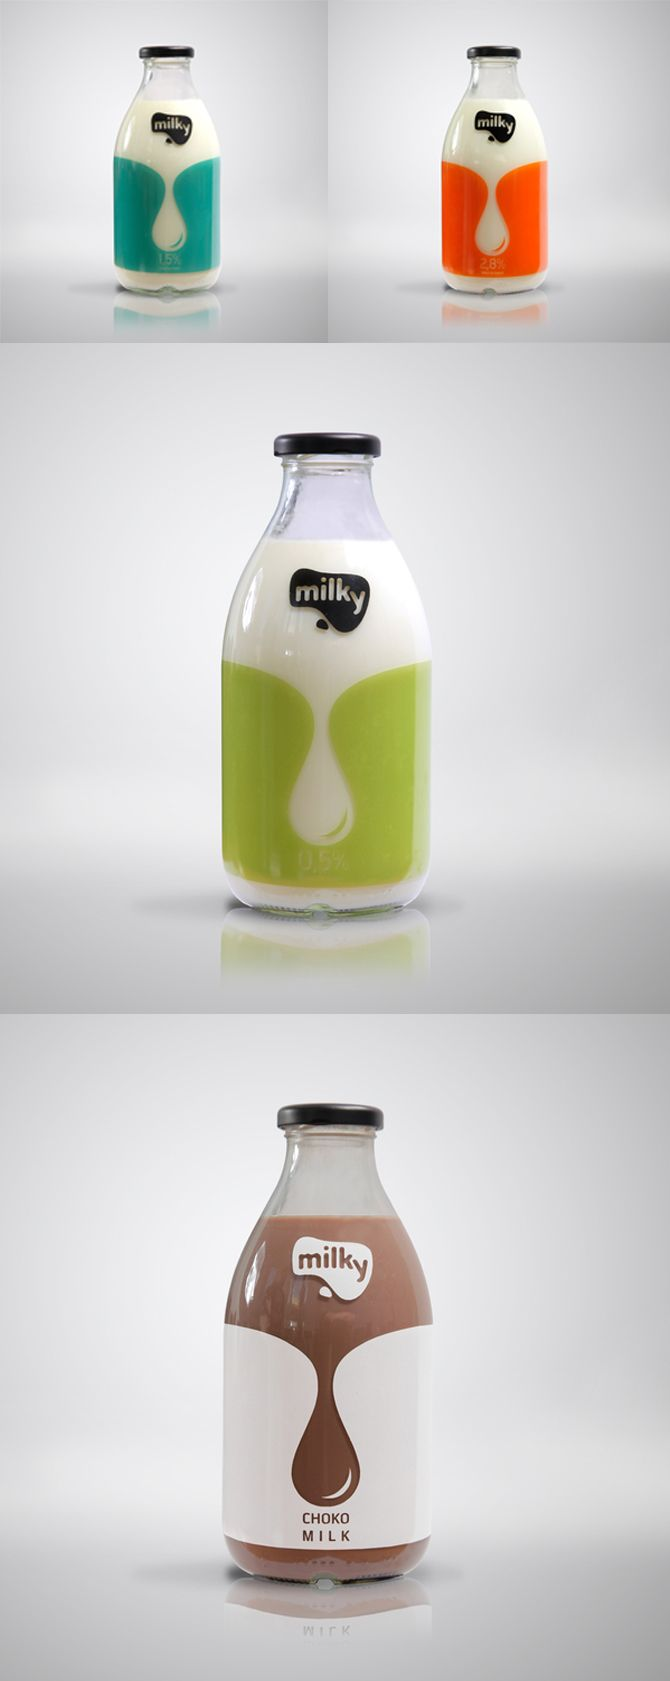 Milk Packaging Designs For Inspiration - We Design Packaging I find this design fun yet professional. I think it might be cool to include little lines that say when to refill or something like the effects if might have at a certain level